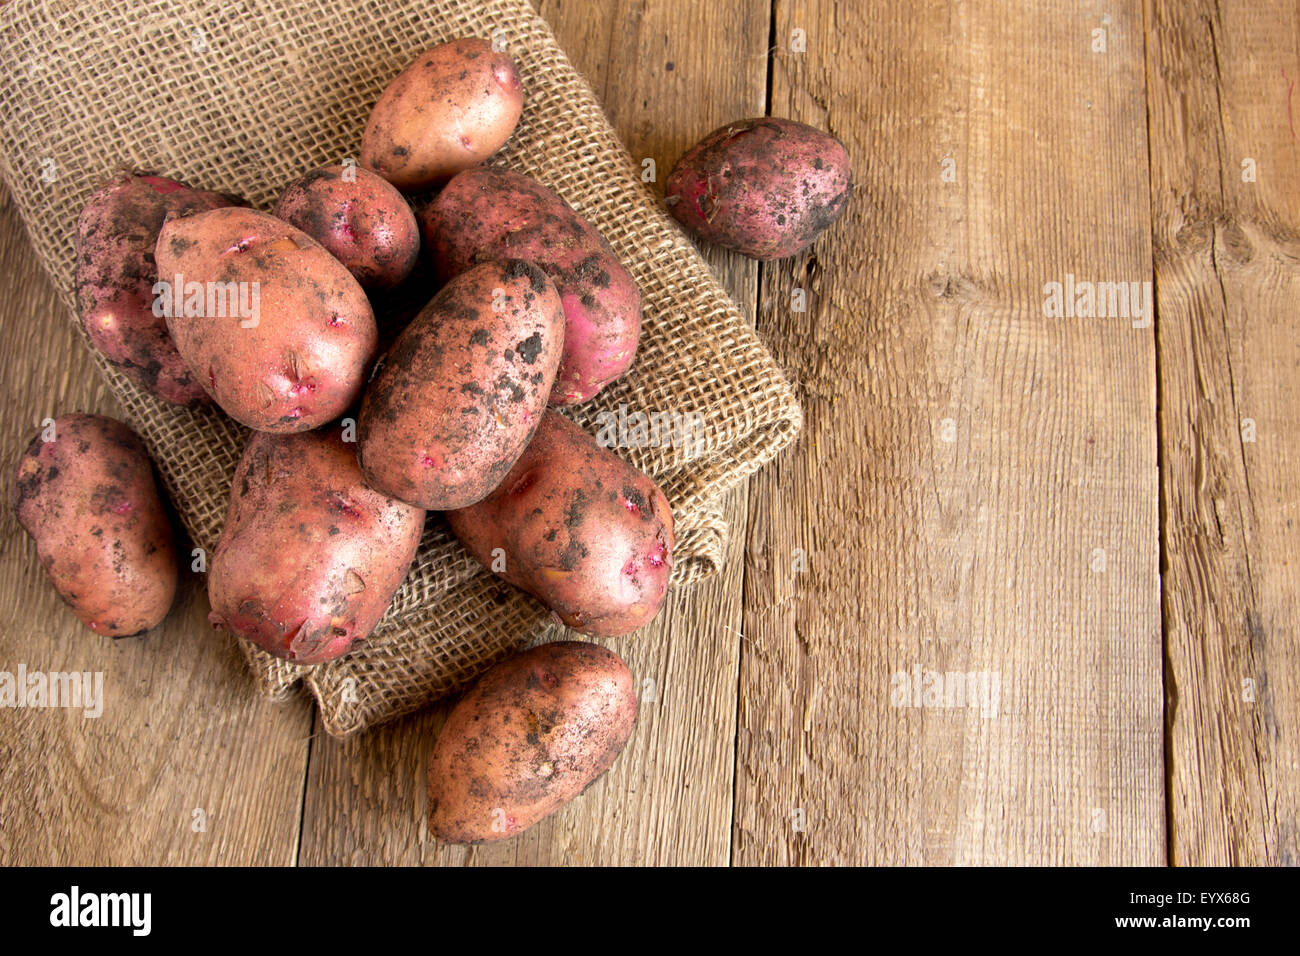 Raw organic potatoes over burlap and rustic wooden table, copy space - Stock Image